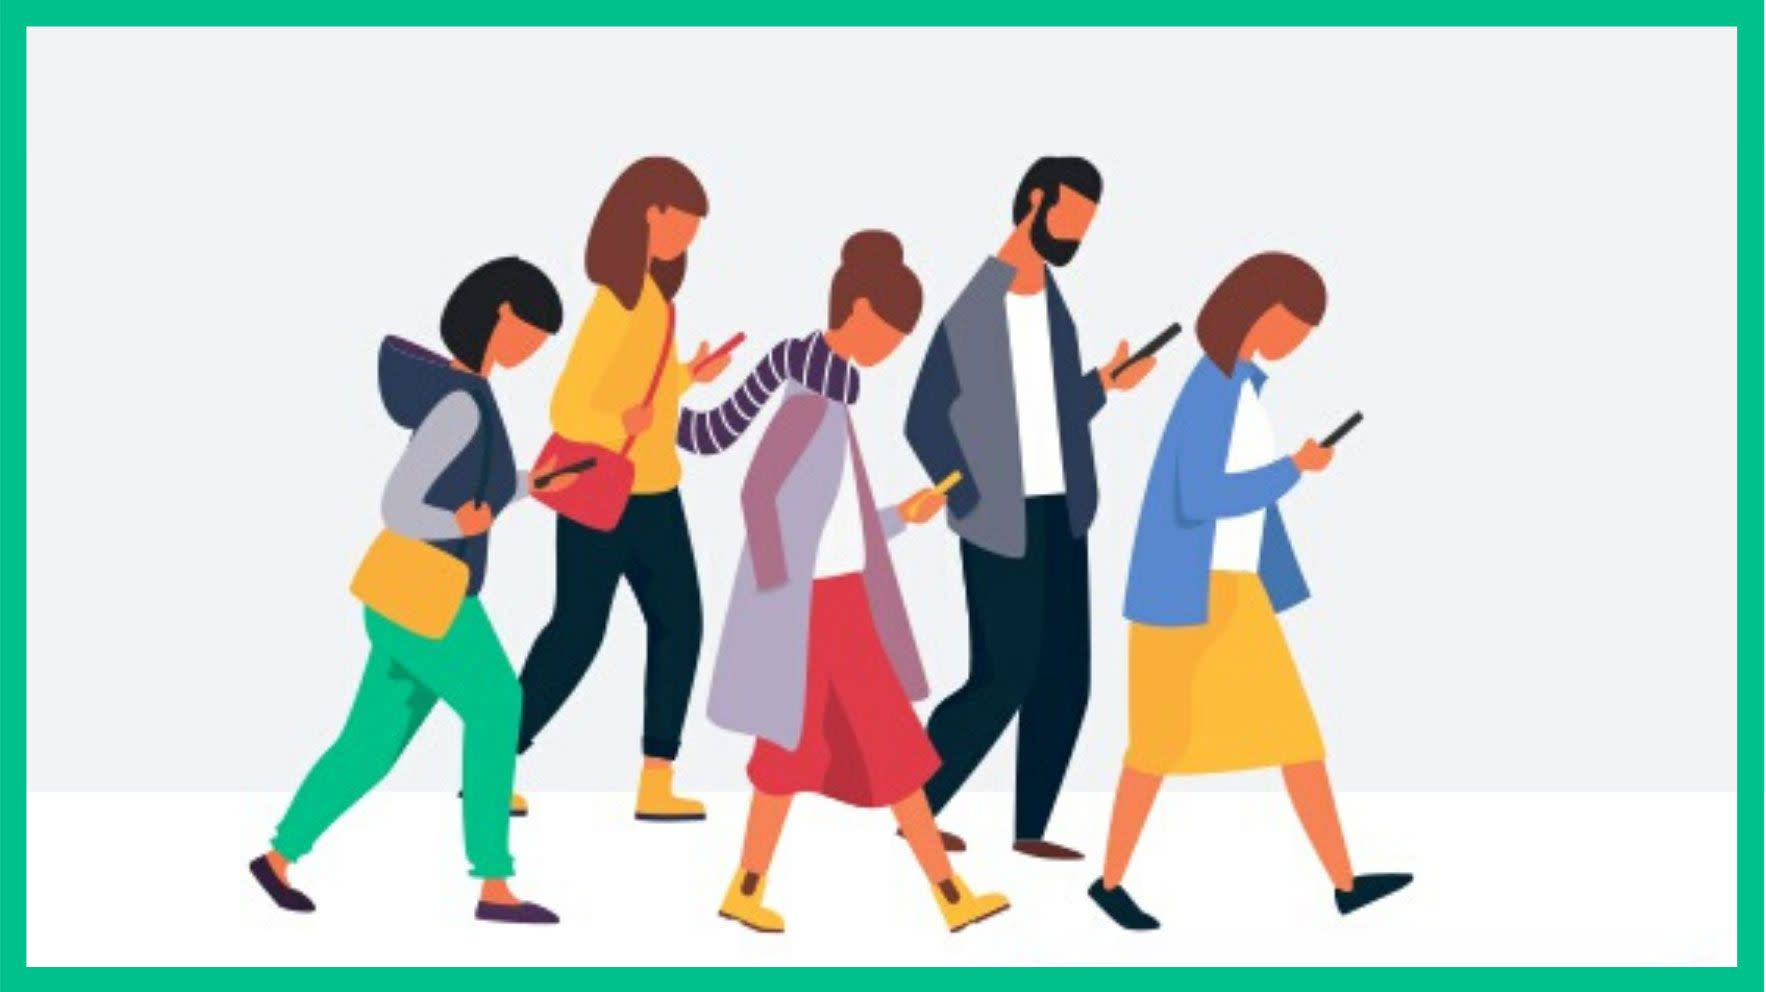 Graphic of people walking with phones